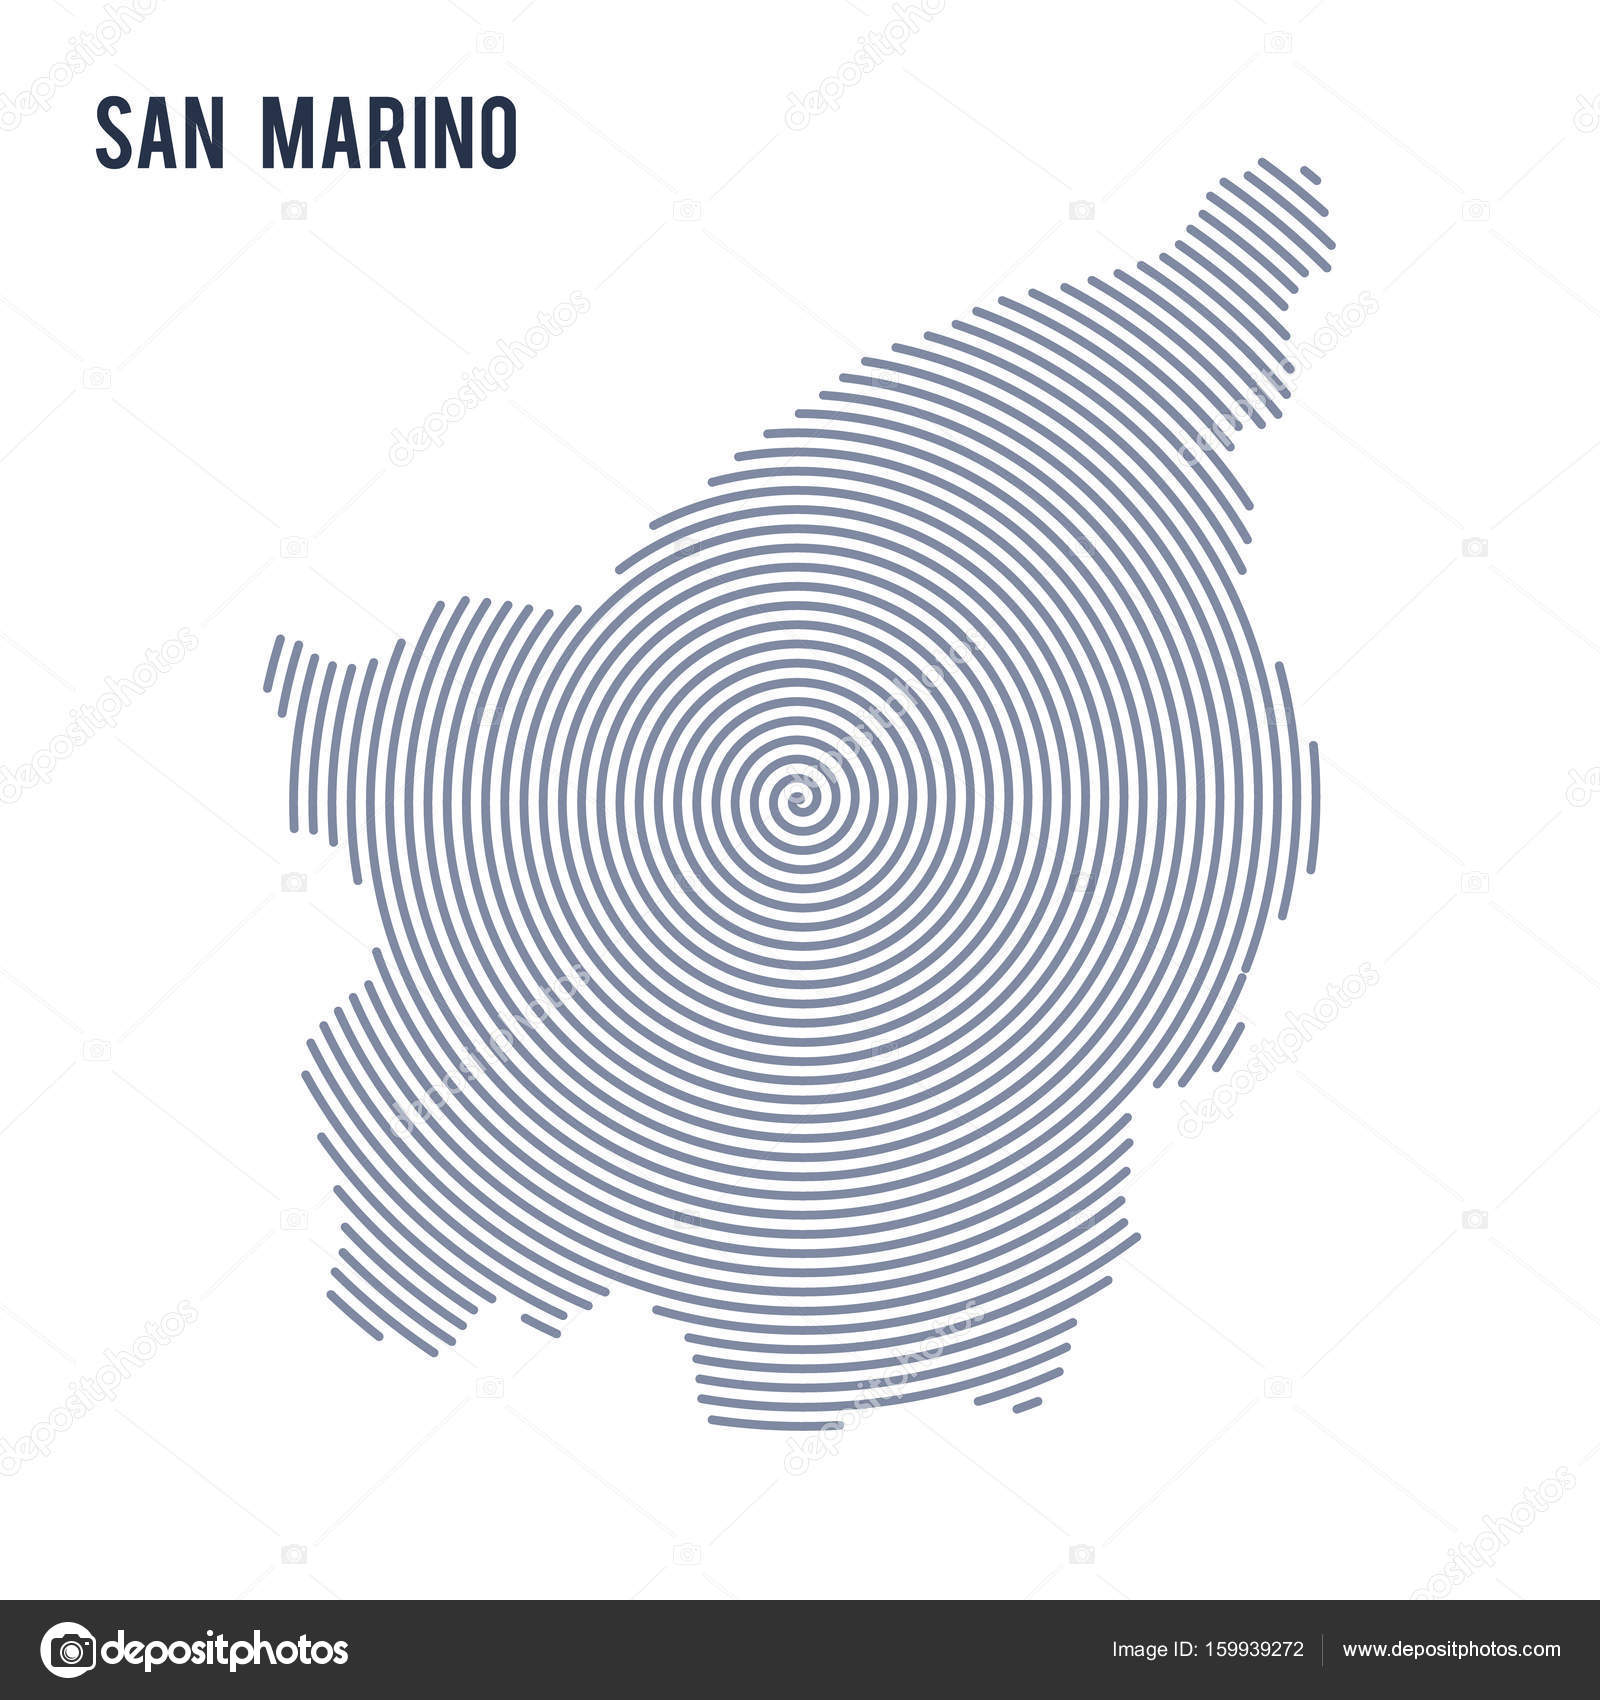 Vector Abstract Hatched Map Of San Marino With Spiral Lines - San marino map download